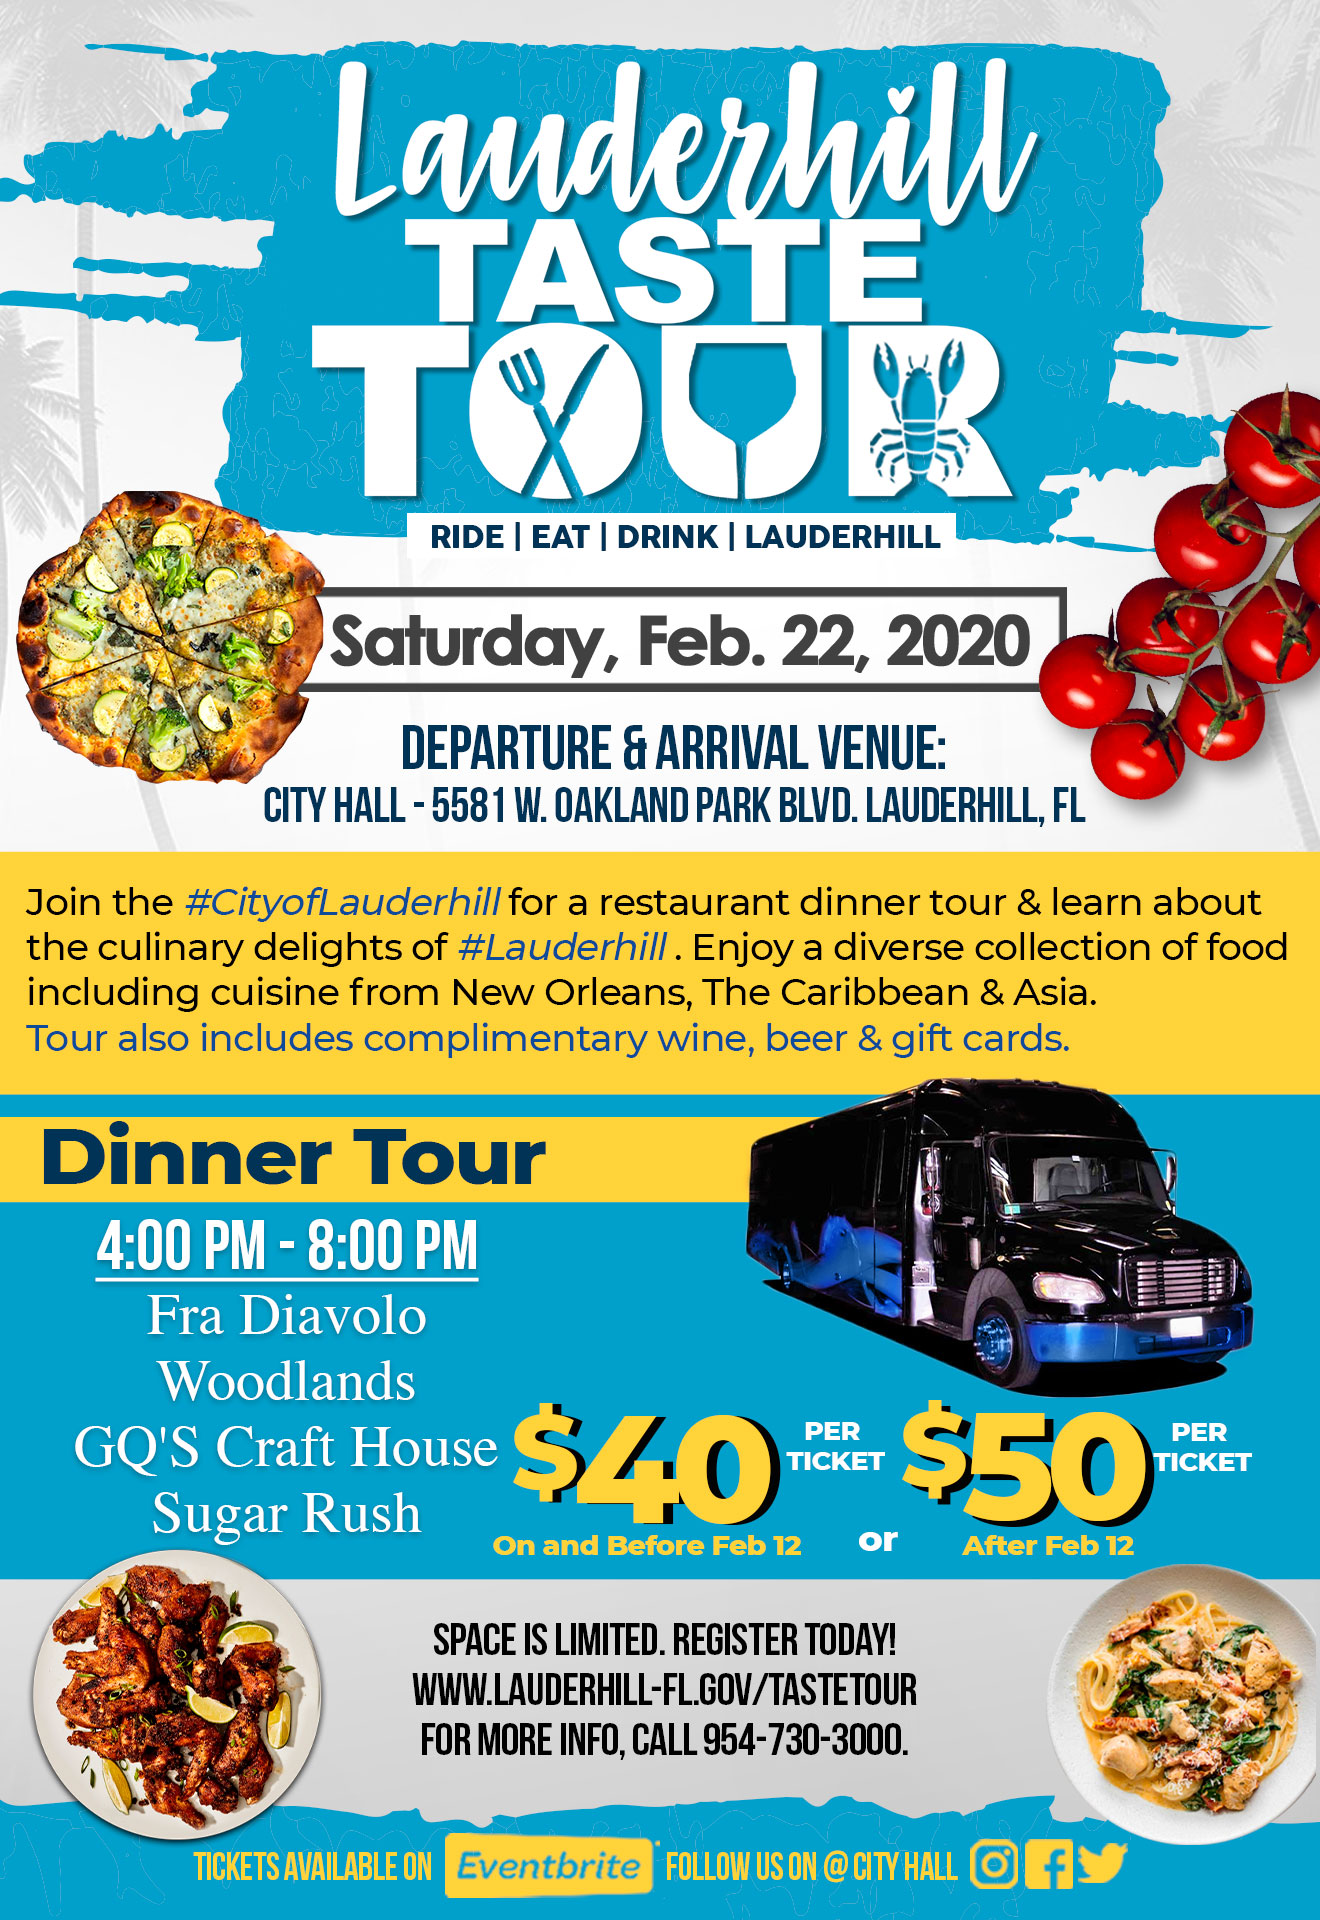 2020 Lauderhill Taste Tour Flyer - Dinner